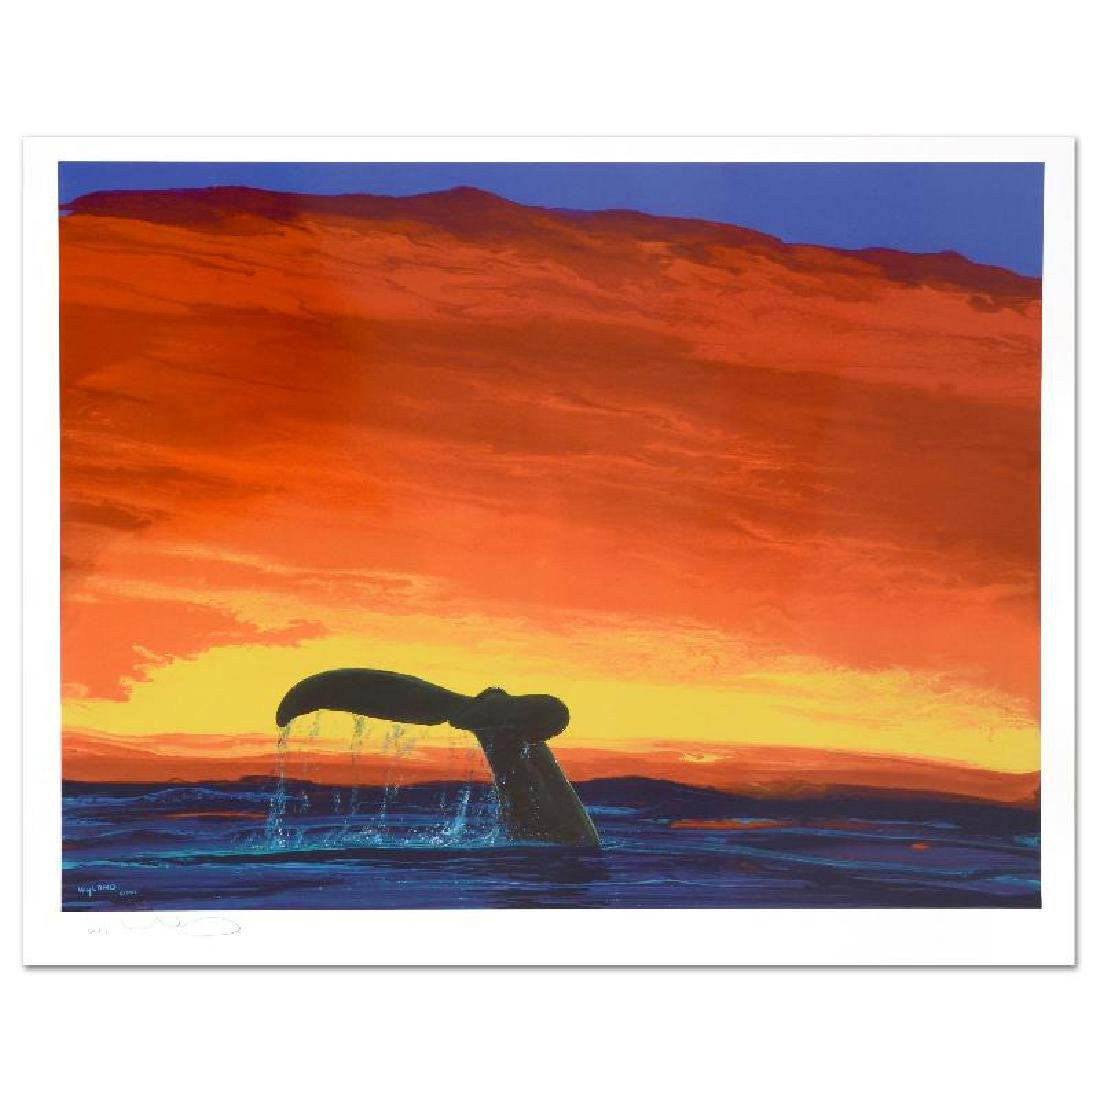 Sounding Seas Limited Edition Lithograph by Famed